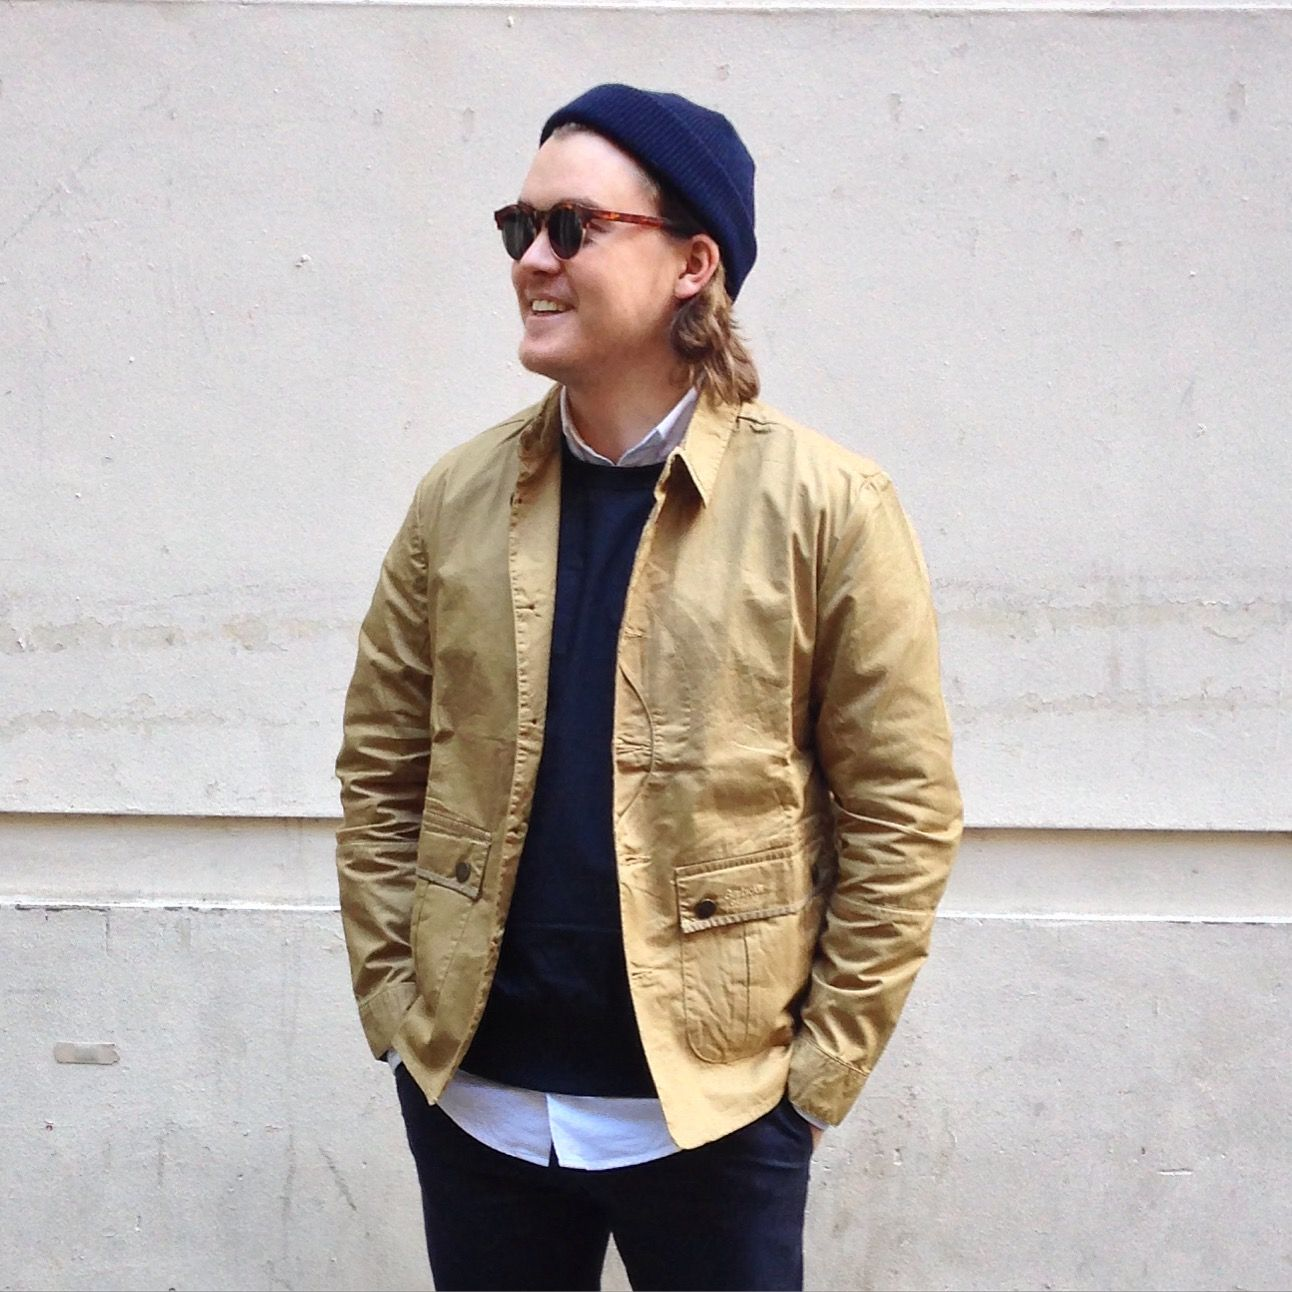 Chris wears: Barbour Caswell Overshirt in Trench / Our Legacy Weaved Cotton  Top in Navy